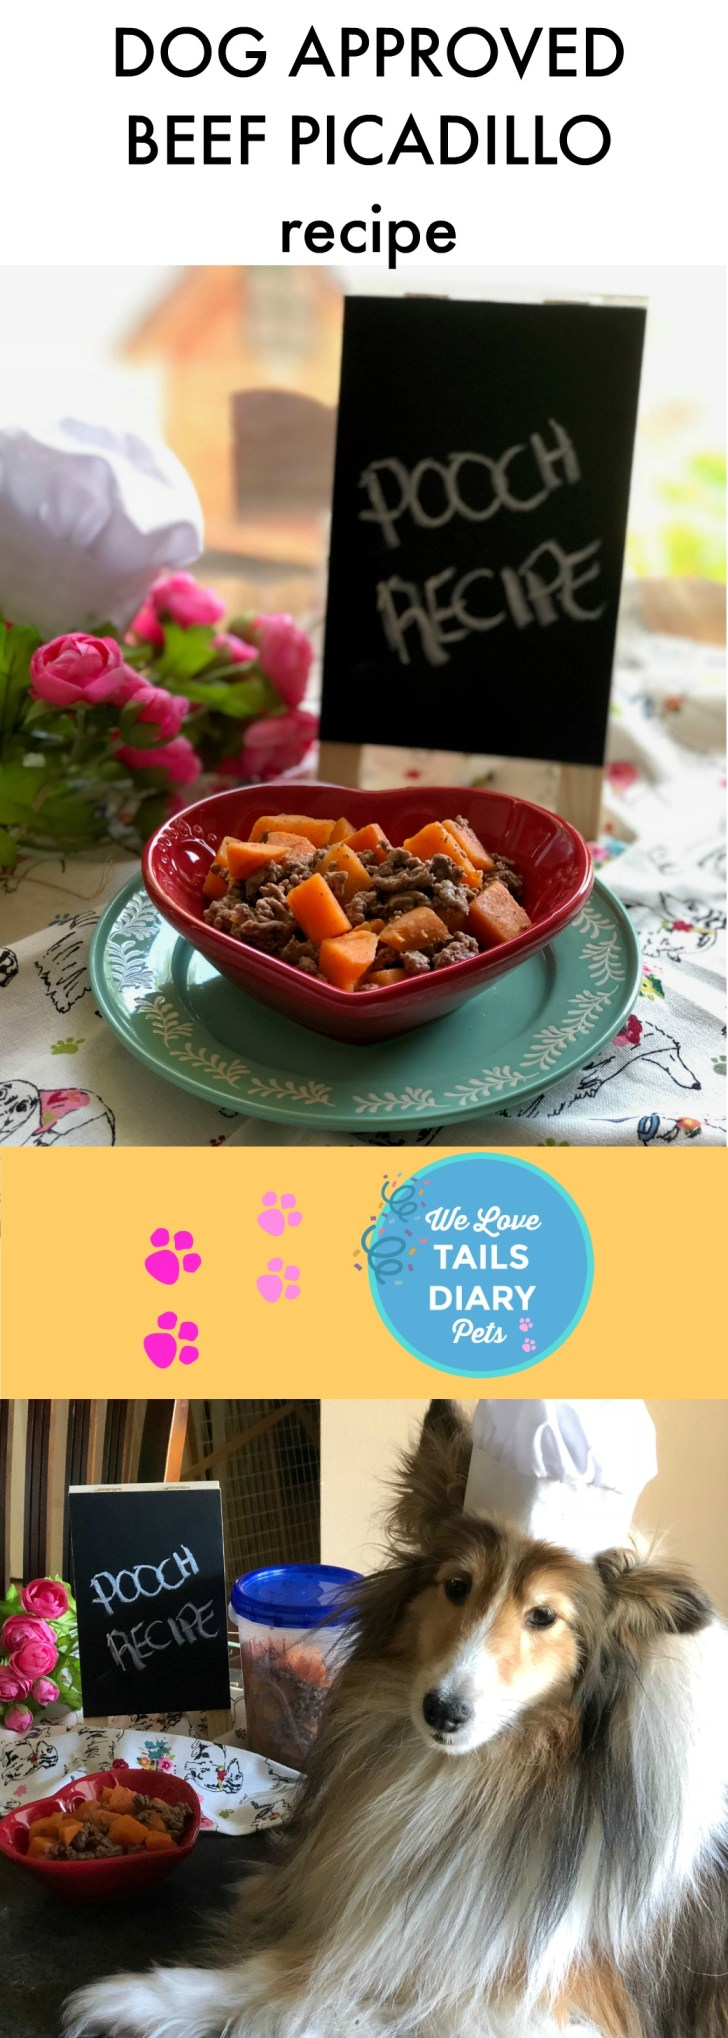 This dog approved beef picadillo is a simple recipe appropriate for dogs. It has only three ingredients: lean beef, fresh sweet potatoes and a small portion of corn oil. It is easy to make and it is freezer friendly.